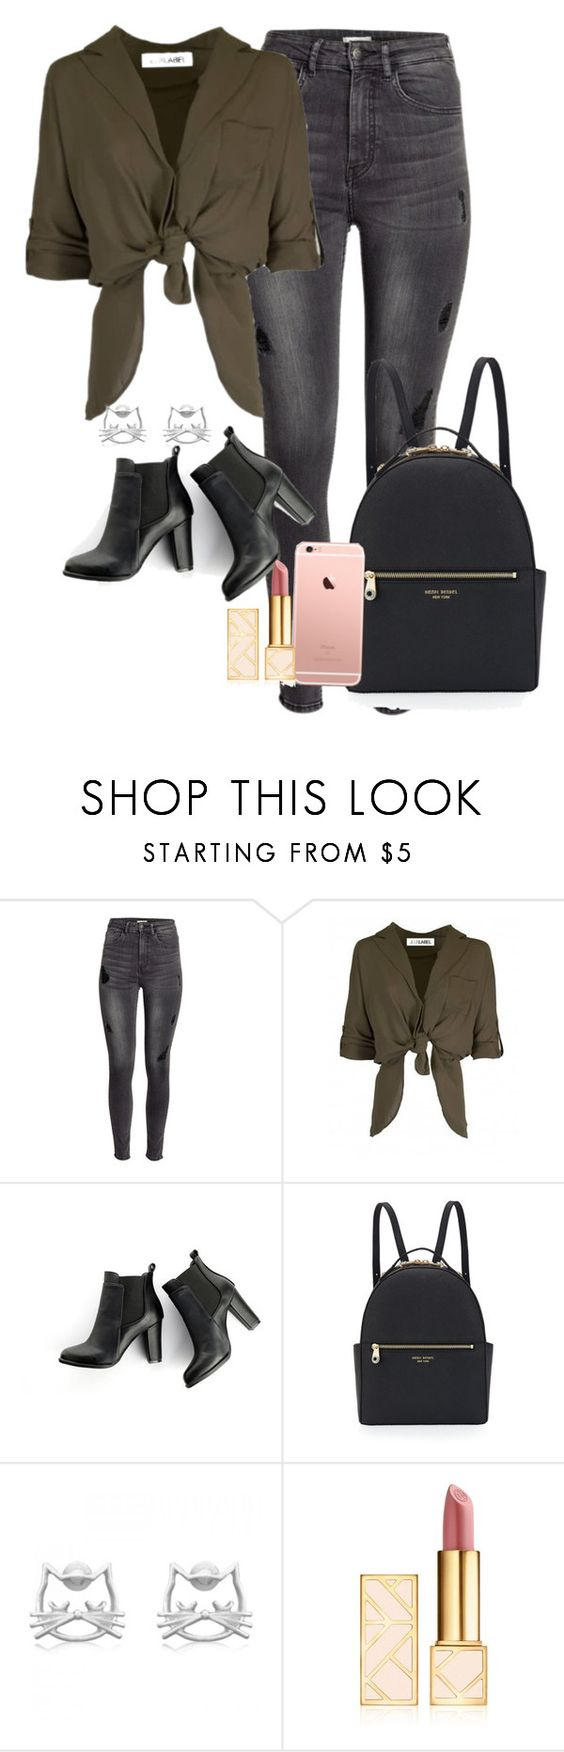 """""""Sem título #697"""" by shescyrus ❤ liked on Polyvore featuring H&M, SWEET MANGO, Henri Bendel and Tory Burch"""